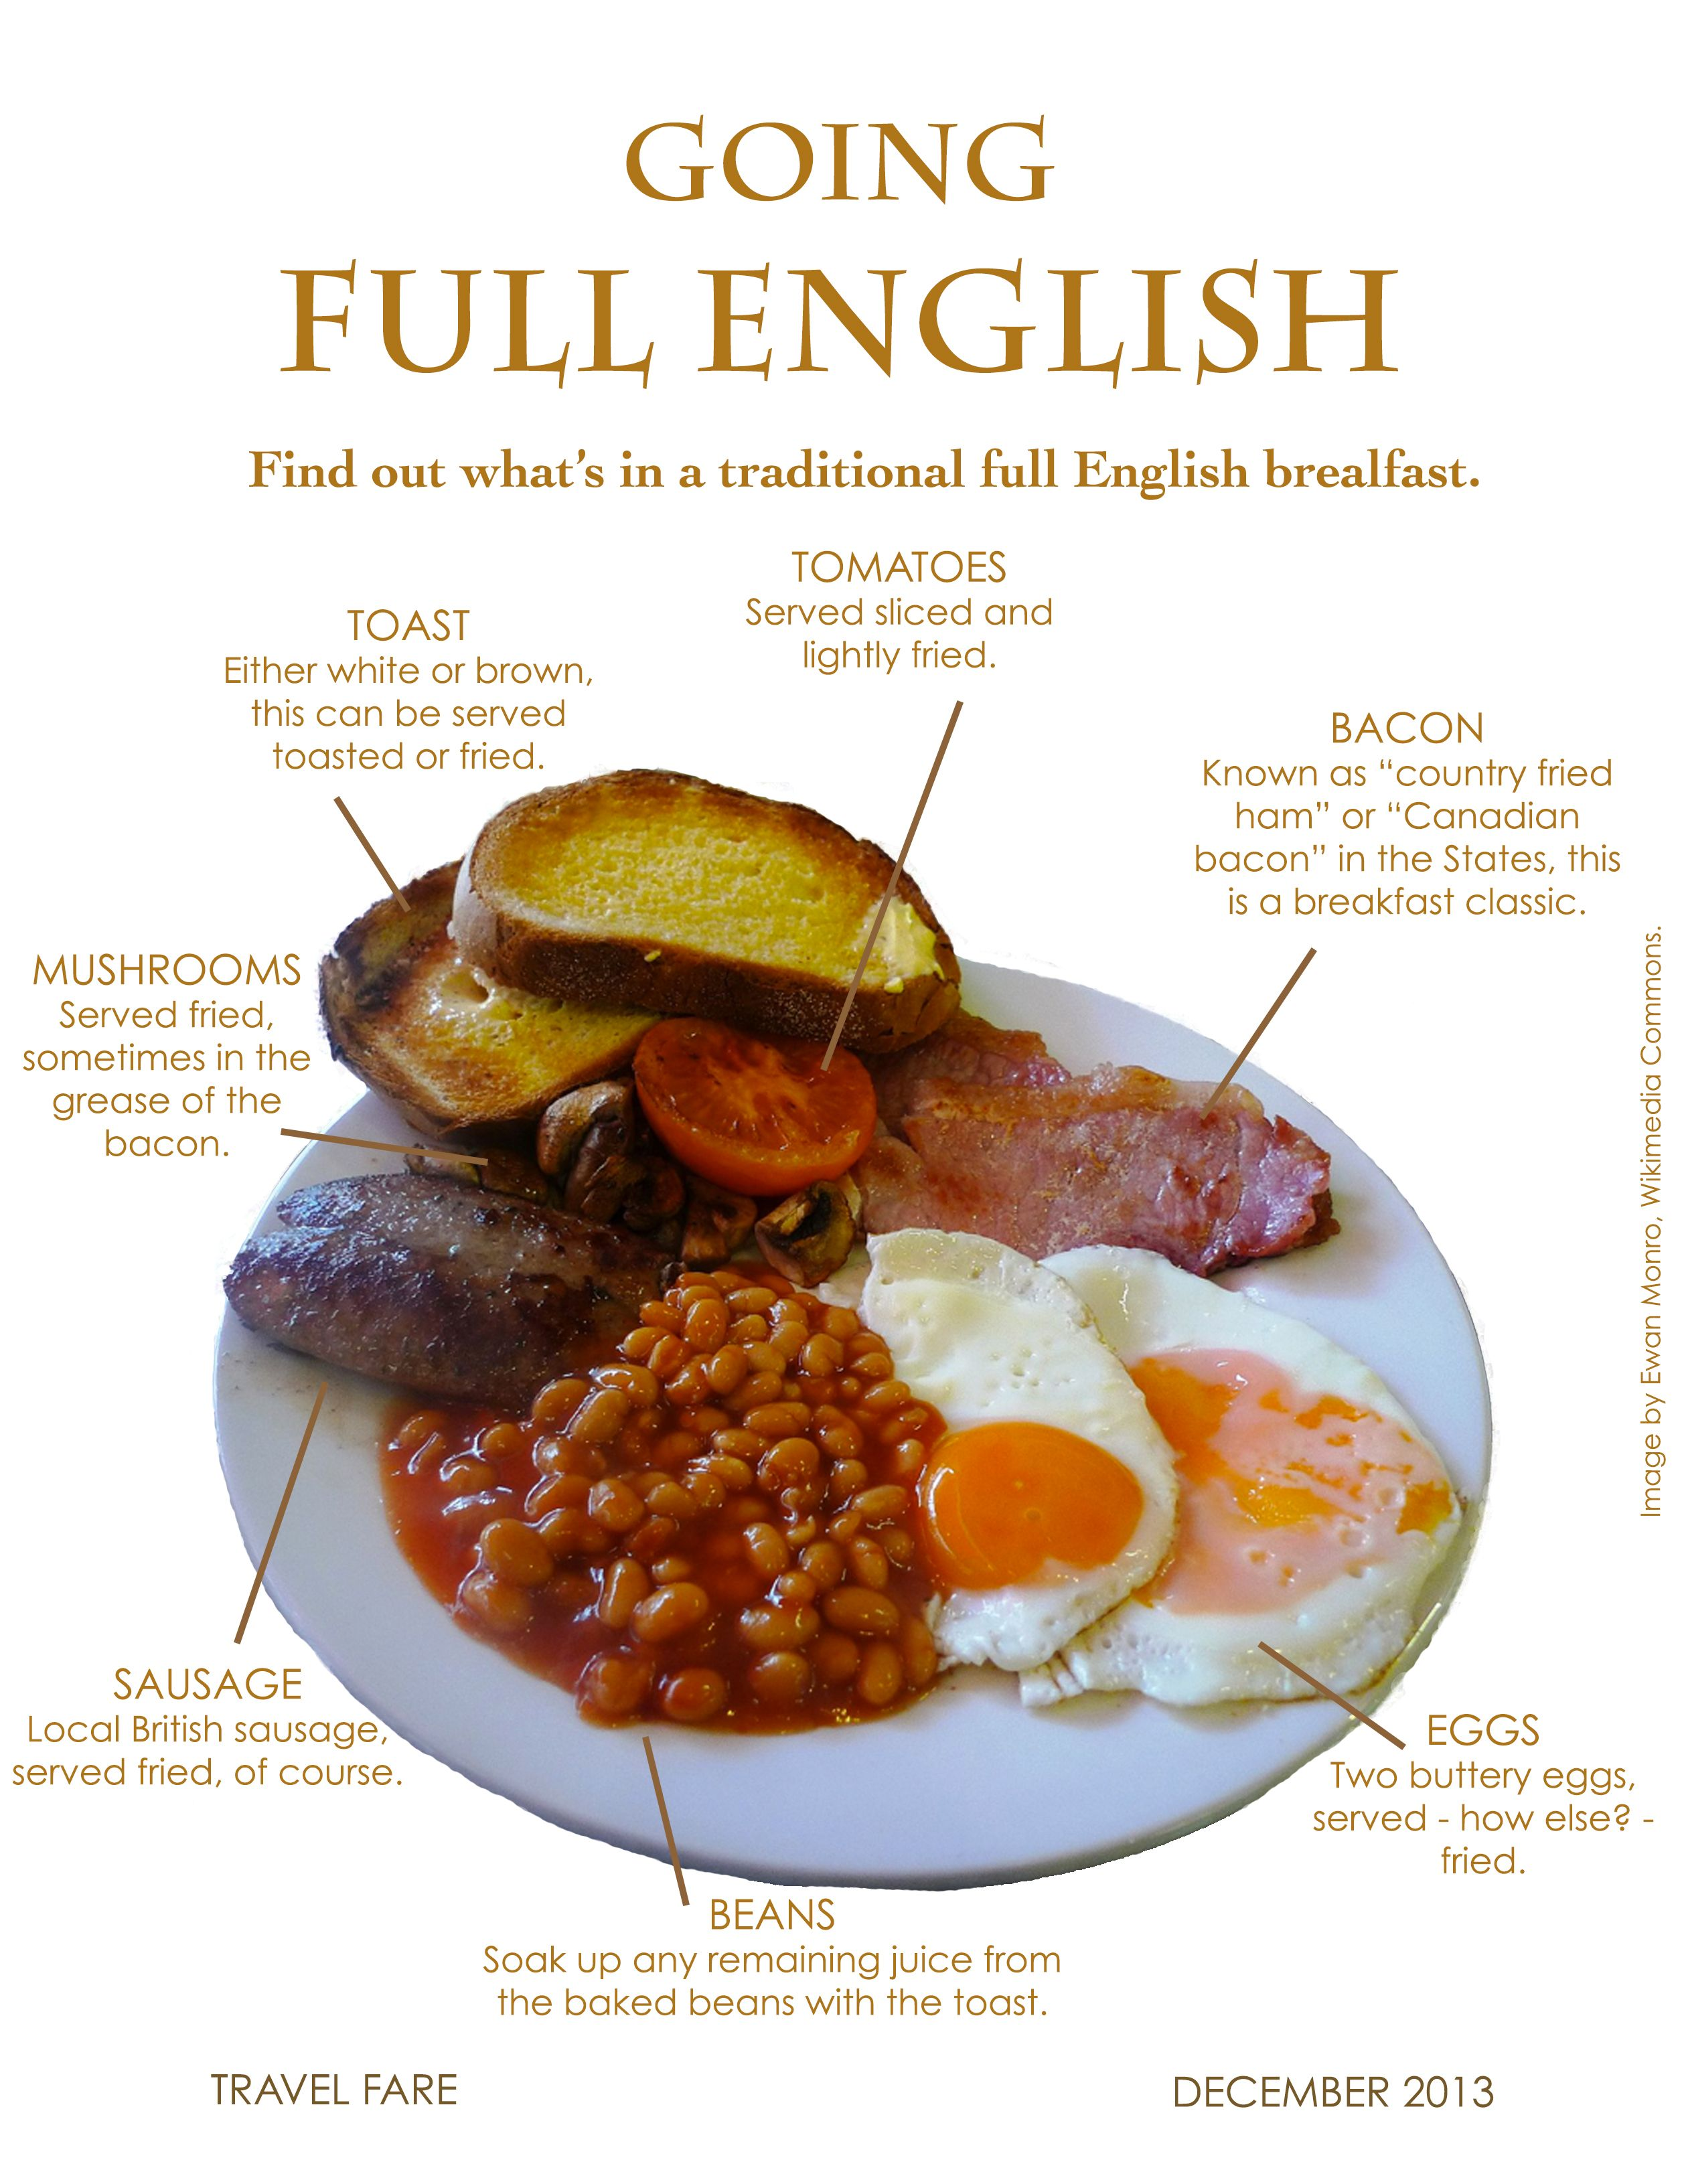 Sunday brunch full english breakfast pinterest sunday brunch food and exercise strategies to reduce your cholesterol if you have been told by your doctor you have elevated cholesterol levels there are strategies you forumfinder Images